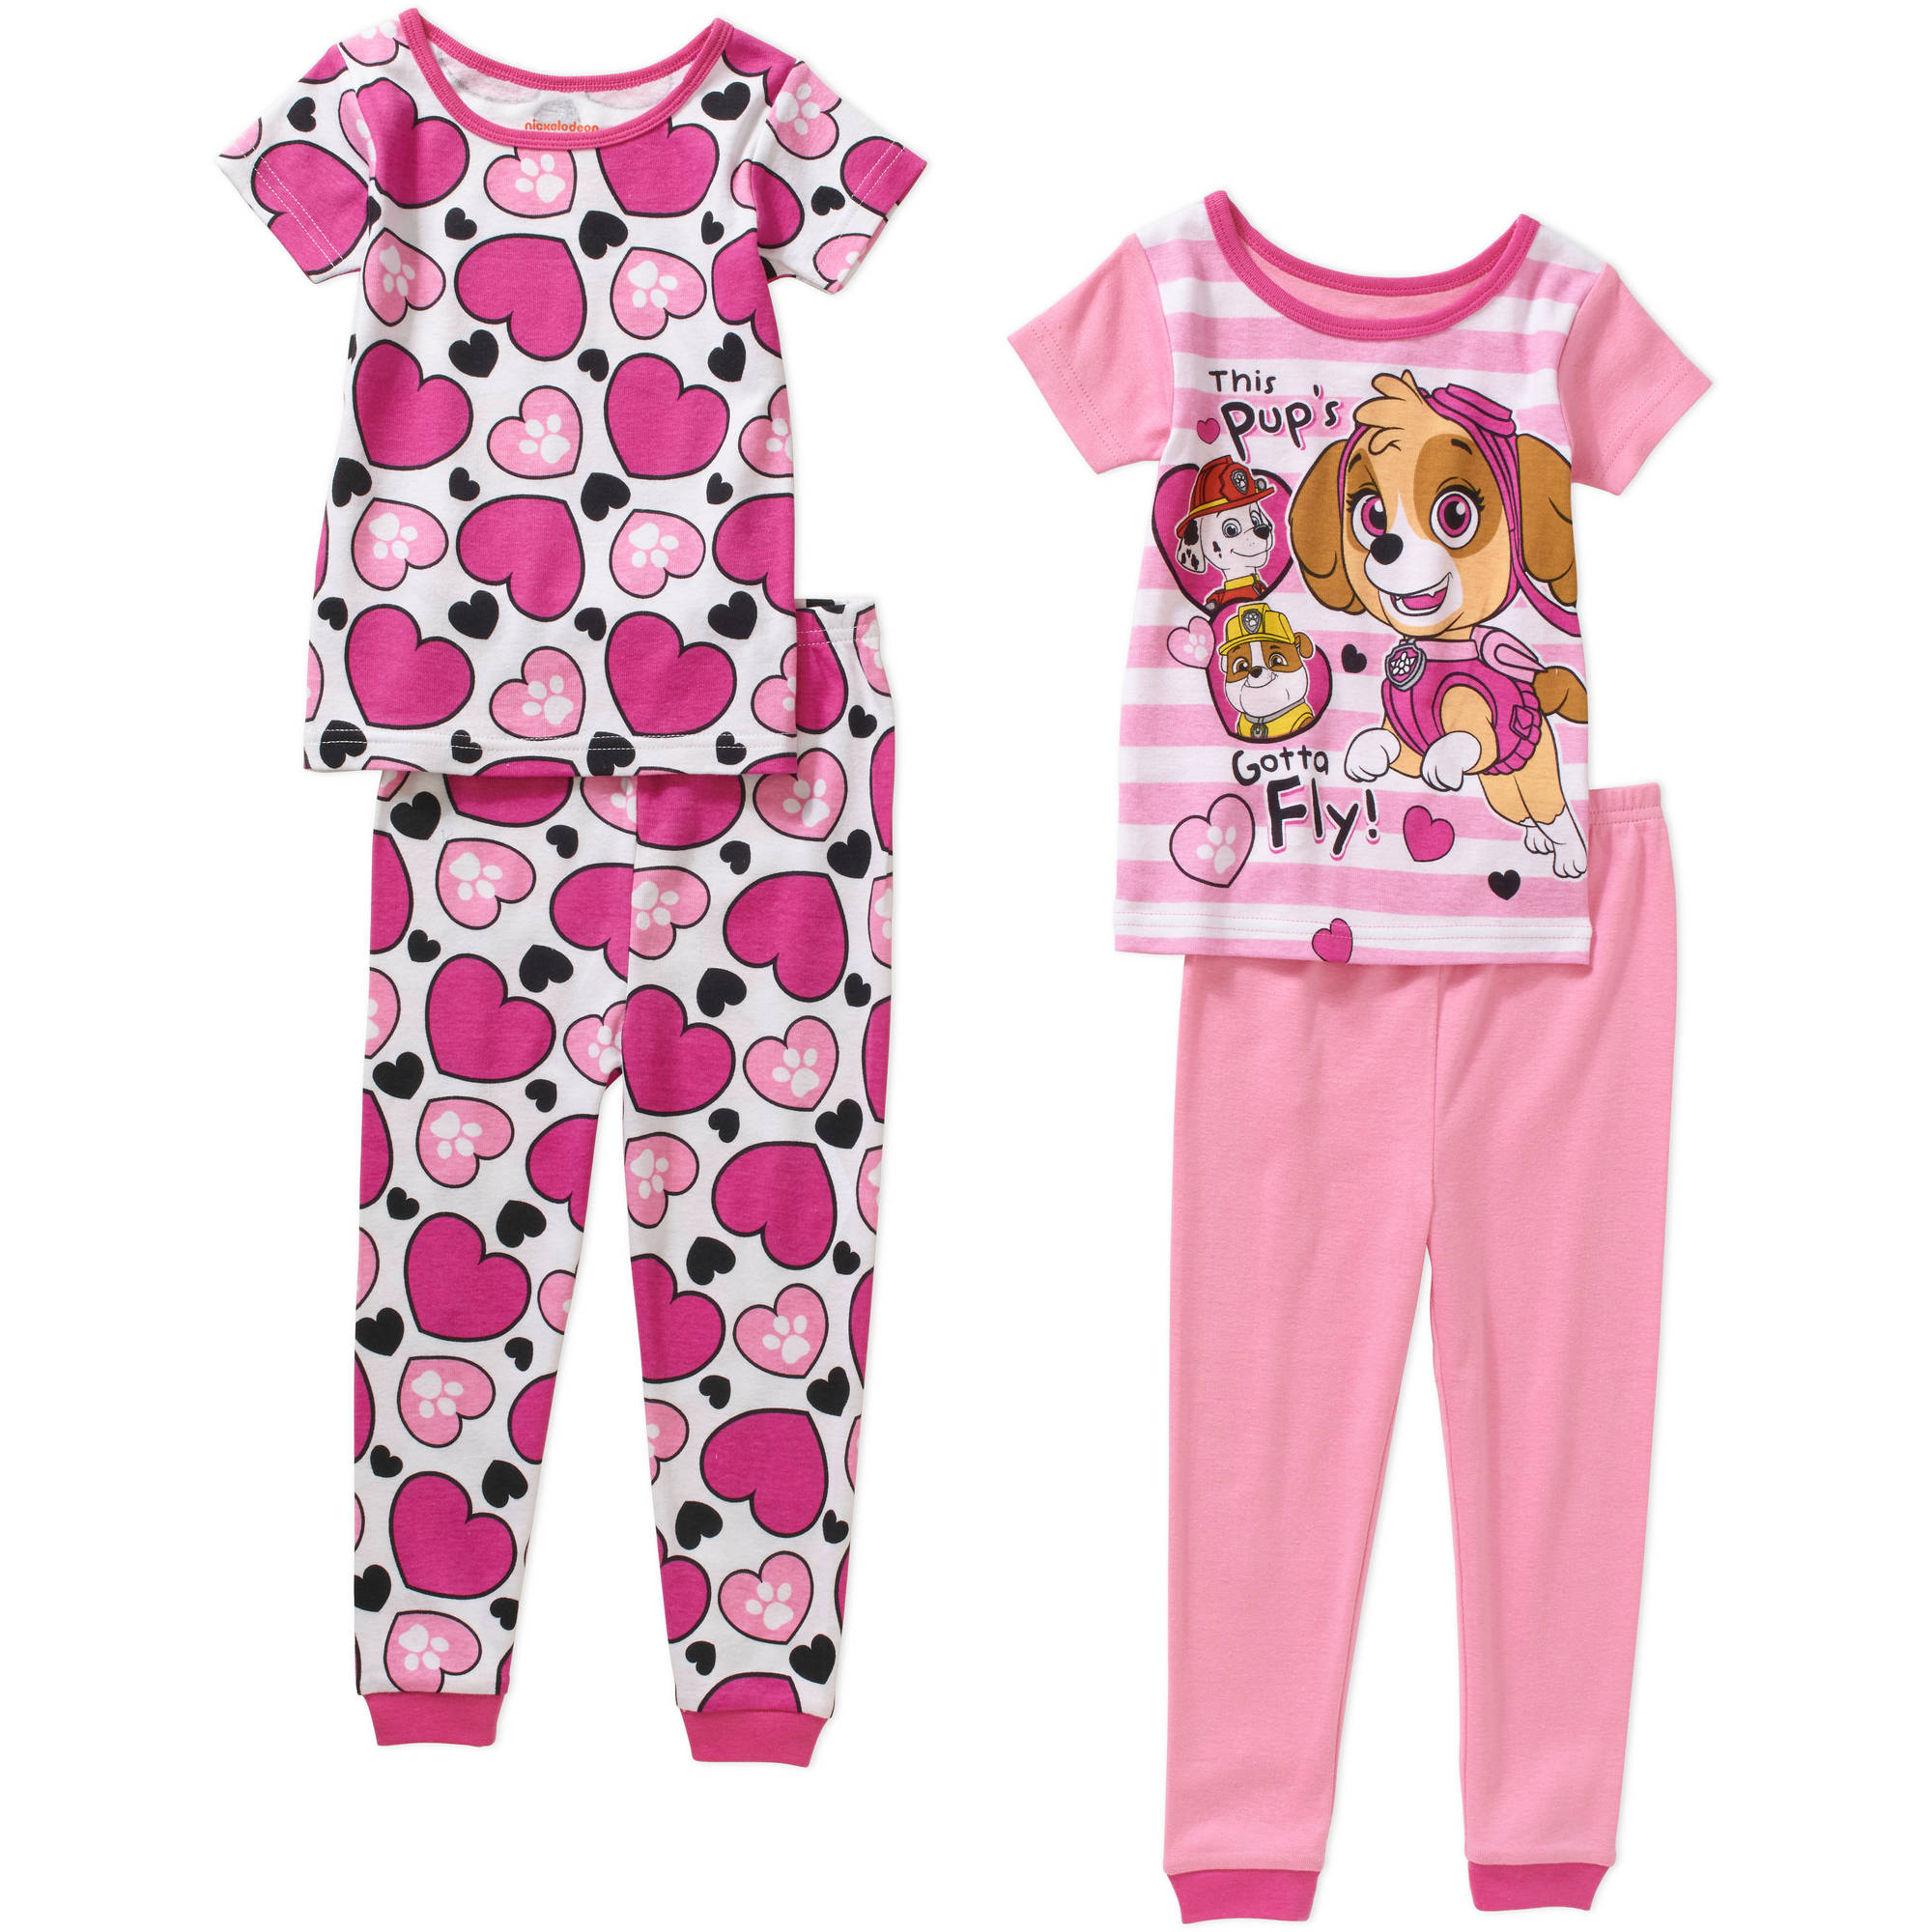 Paw Patrol Toddler Girl Cotton Tight Fit Short Sleeve PJ Set, 4-Pieces